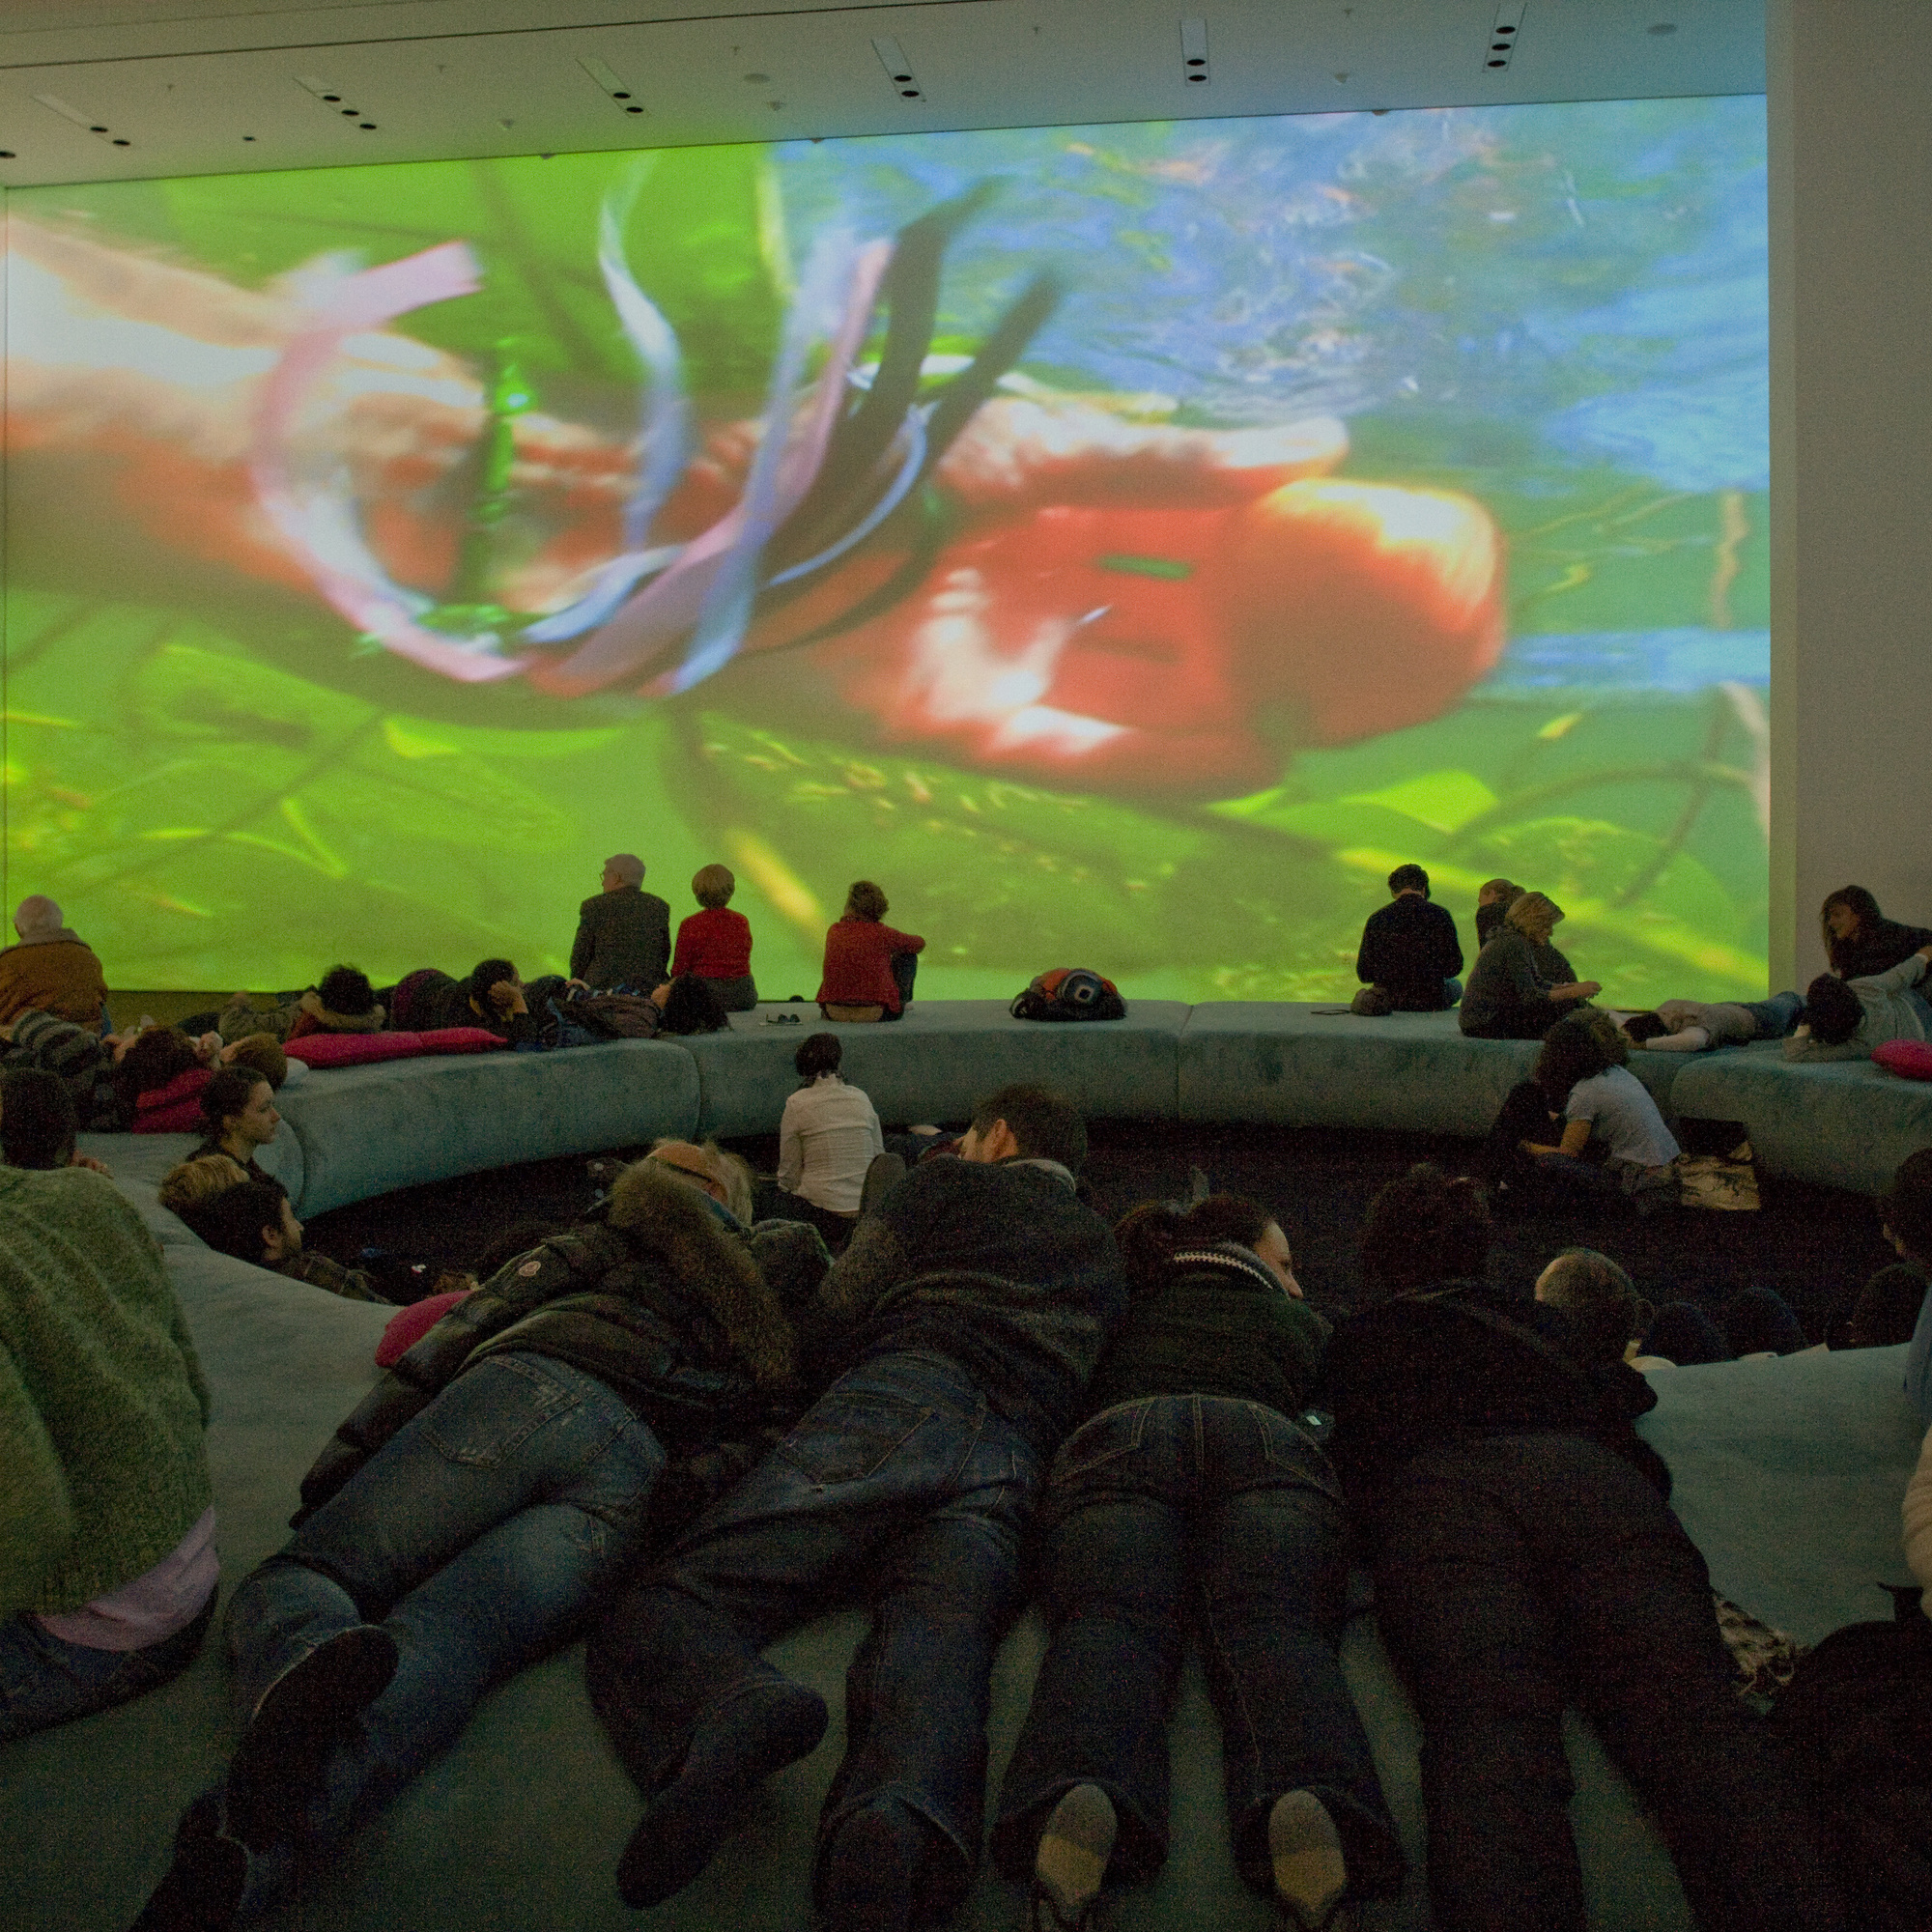 Pipilotti Rist. Pour Your Body Out (7354 Cubic Meters). 2008. Multichannel video projection (color, sound), projector enclosures, circular seating element, carpet. Installation view at The Museum of Modern Art, 2008. Photo: Thomas Griesel